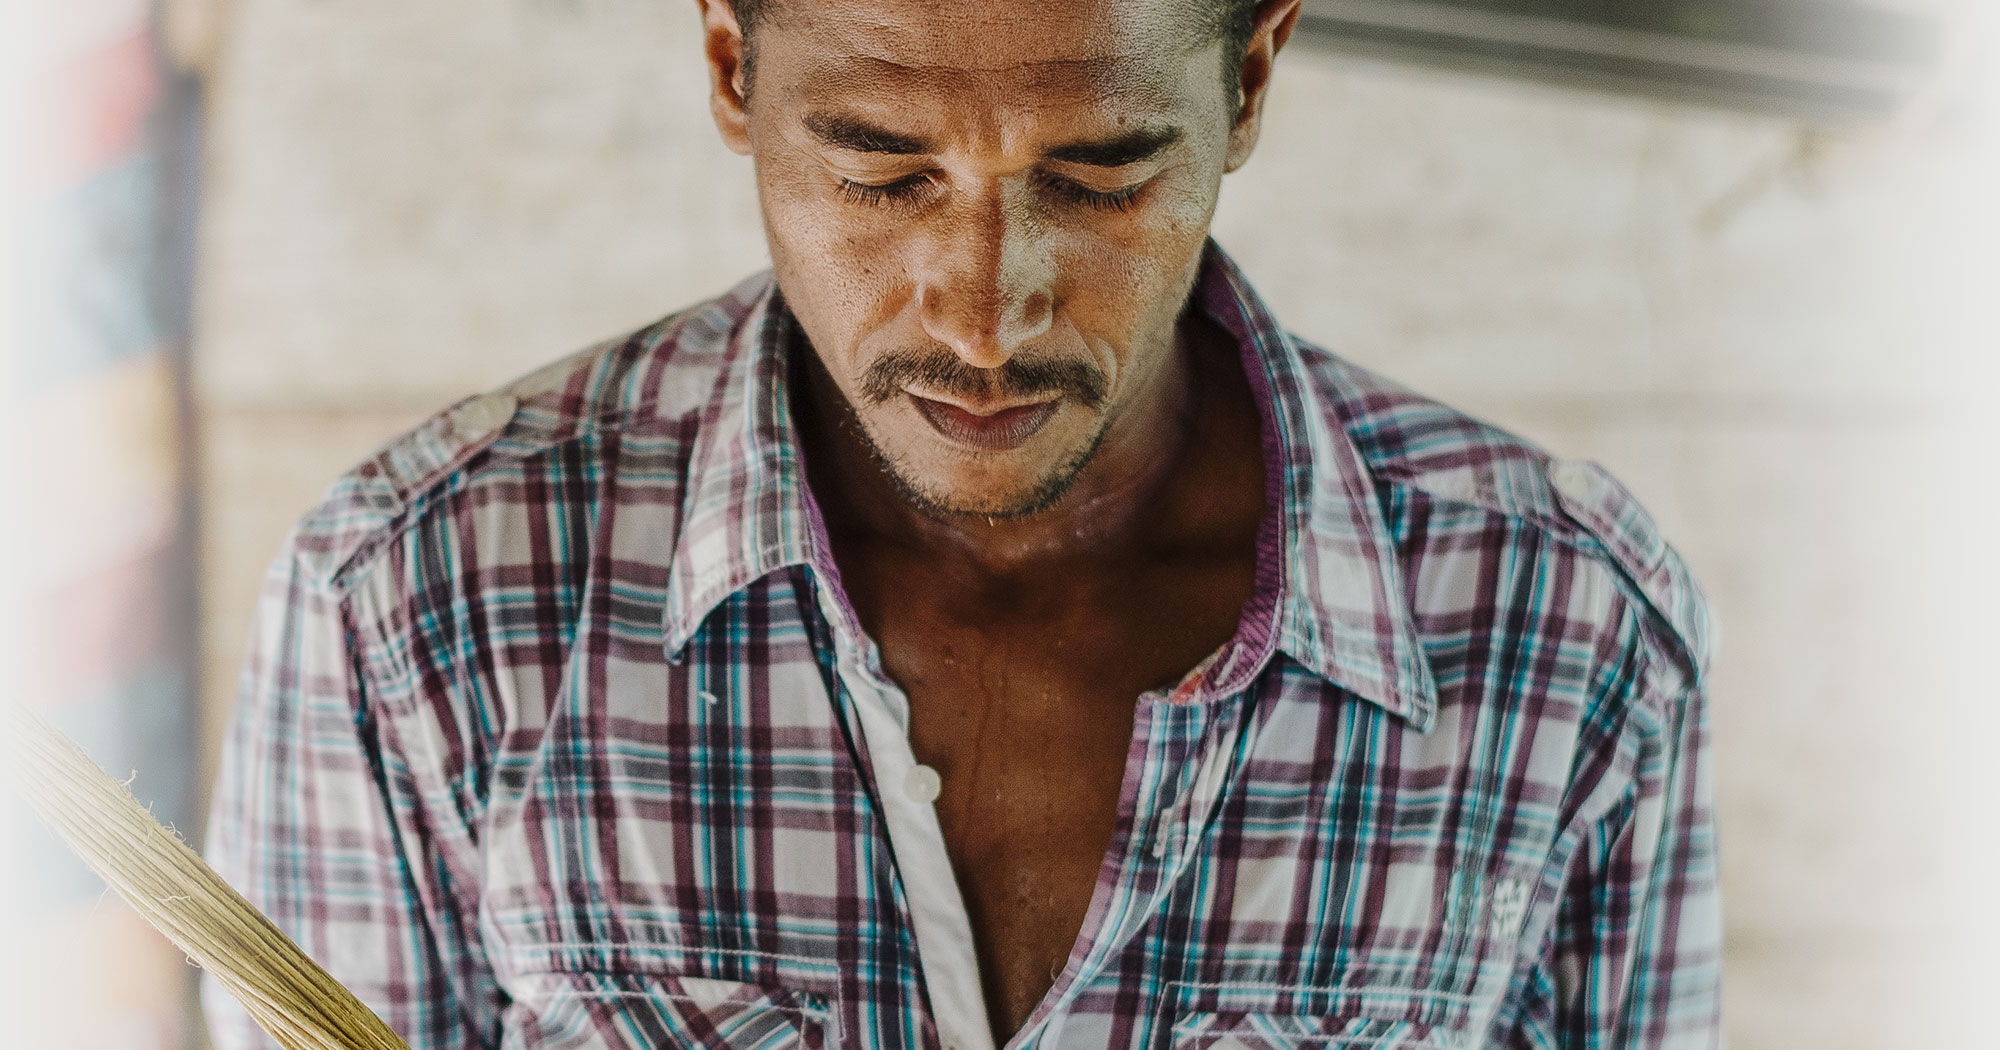 Man with eyes closed and head tilted in plaid shirt down praying